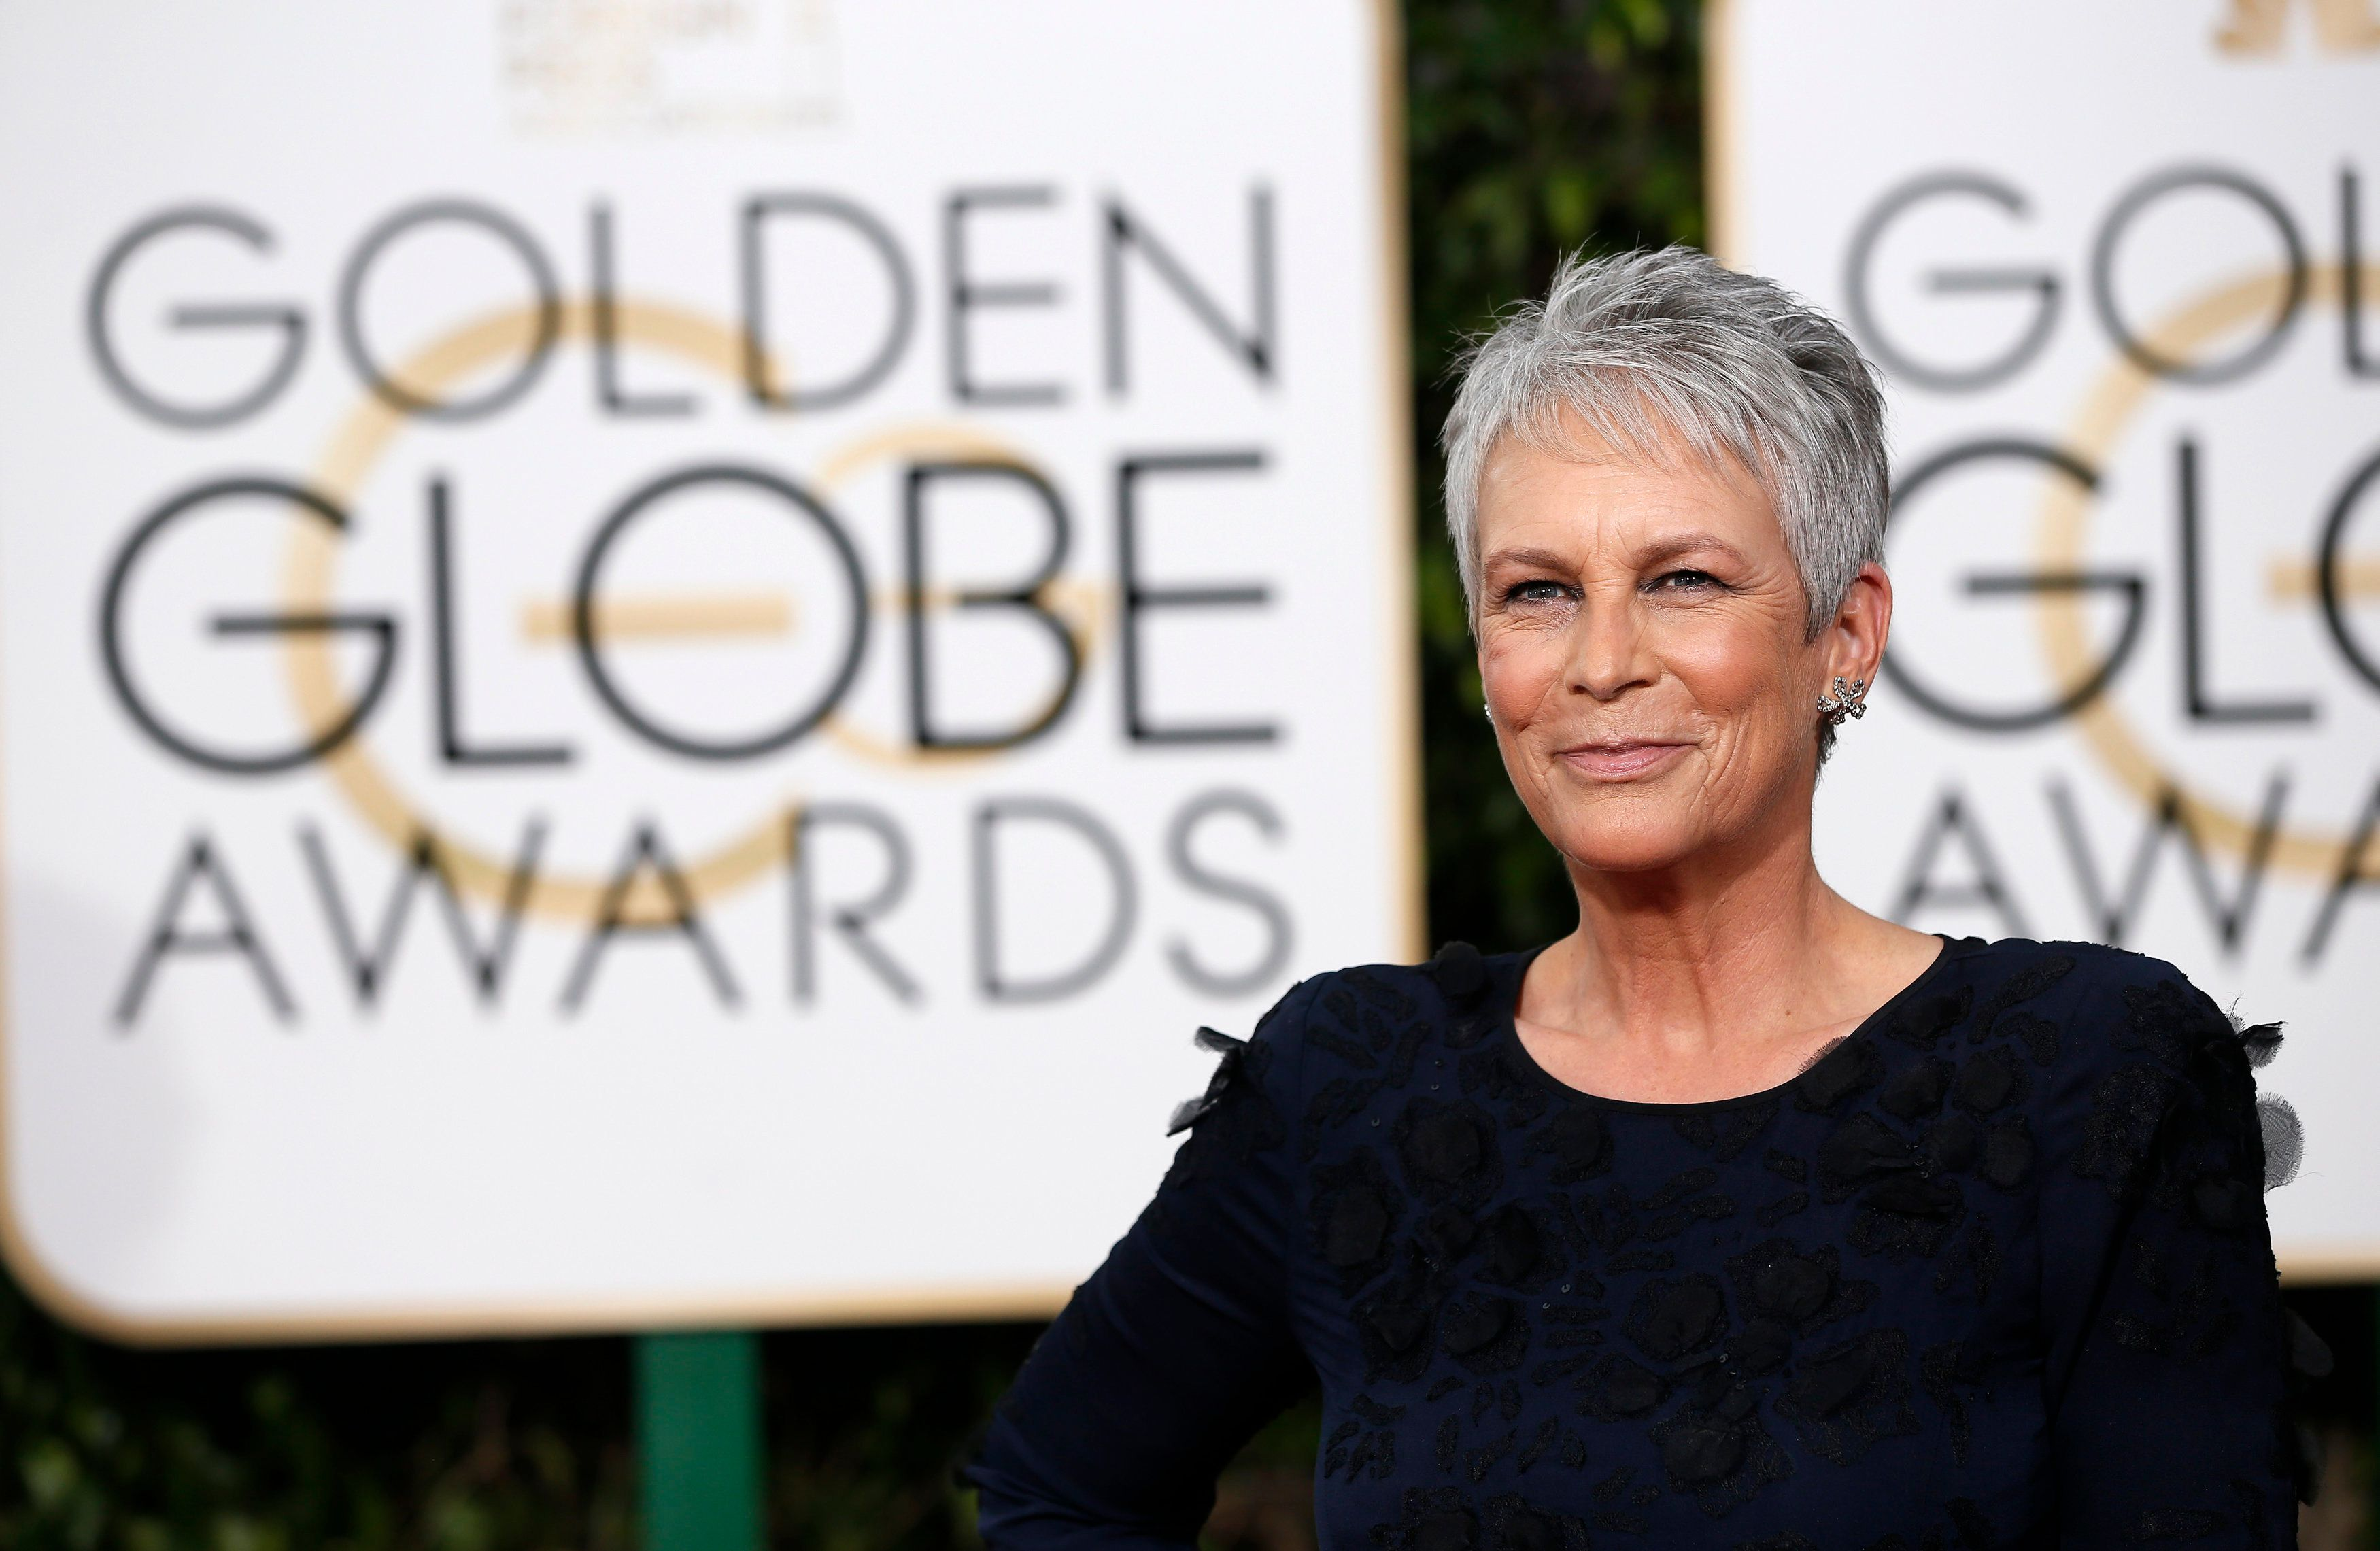 Actress Jamie Lee Curtis arrives at the 73rd Golden Globe Awards in Beverly Hills, California January 10, 2016.  REUTERS/Mario Anzuoni